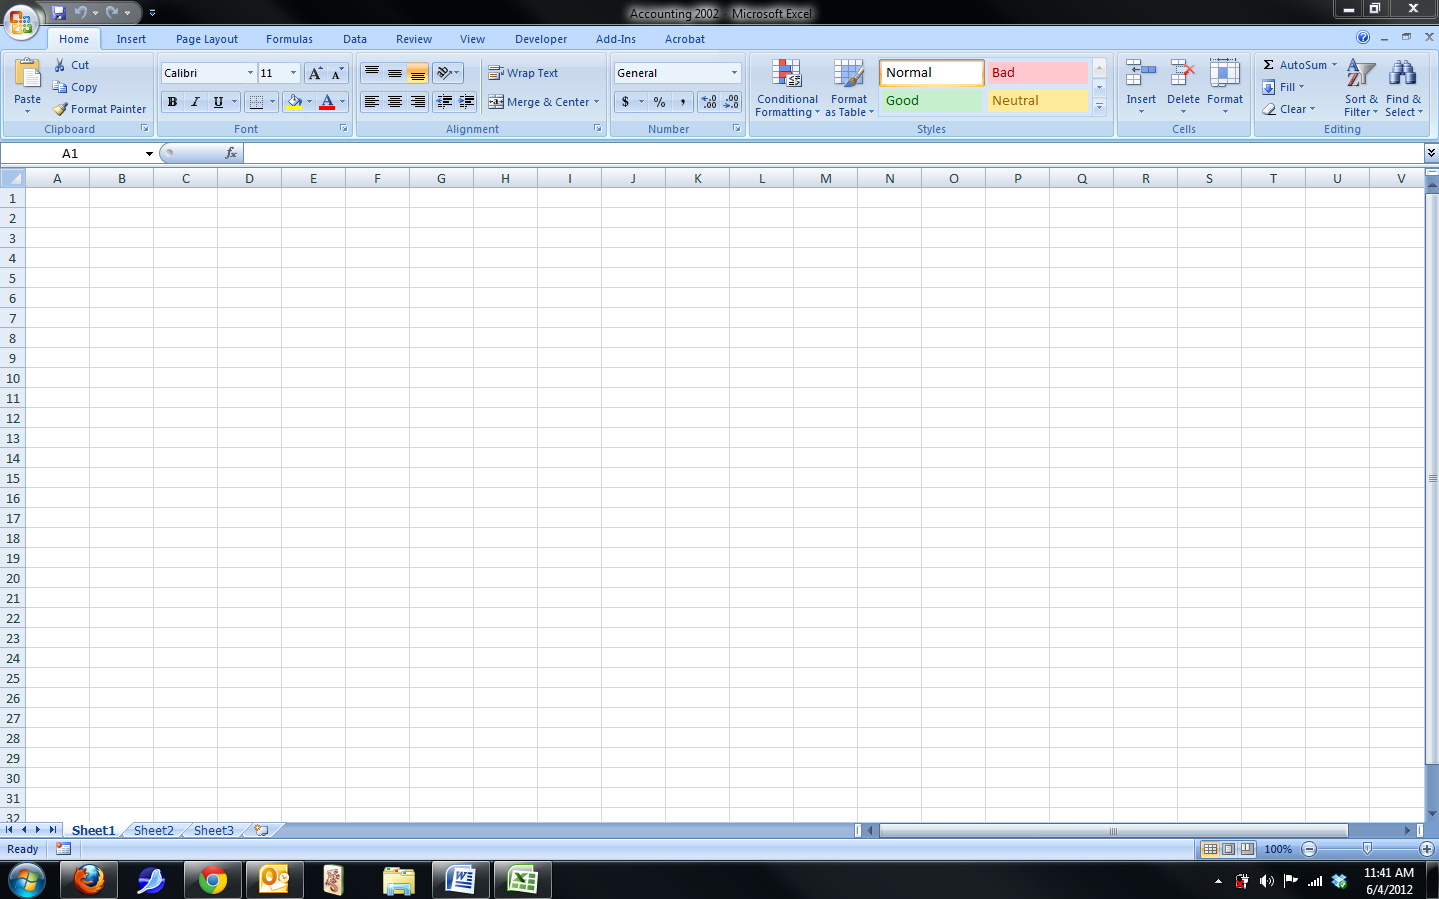 MS Excel Tips and Tricks: A look at the Main Workbook in Excel 2007